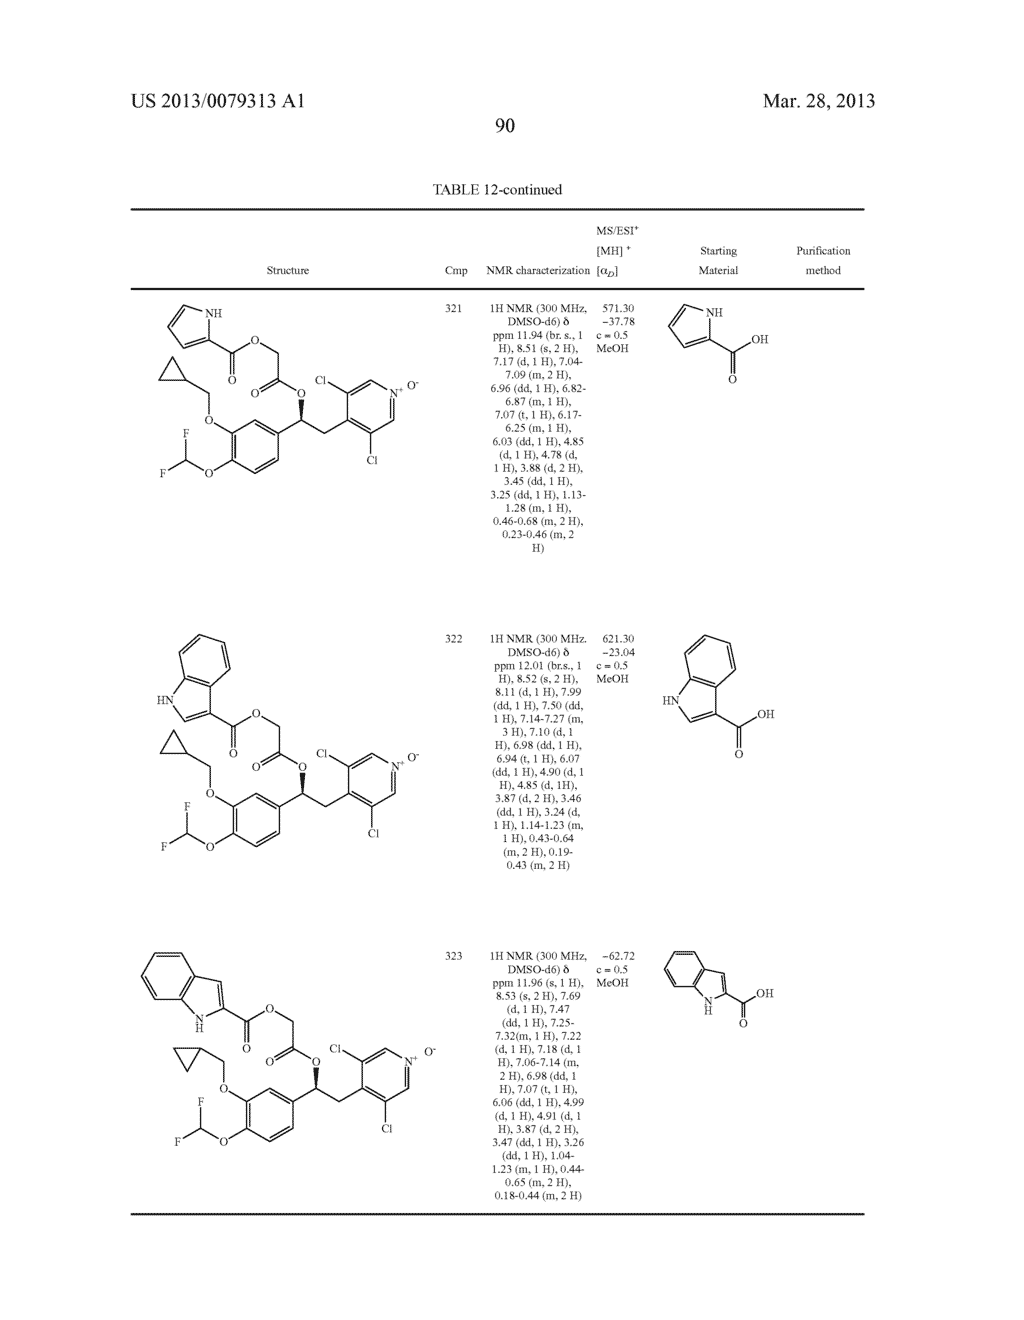 DERIVATIVES OF 1-PHENYL-2-PYRIDINYL ALKYL ALCOHOLS AS PHOSPHODIESTERASE     INHIBITORS - diagram, schematic, and image 91